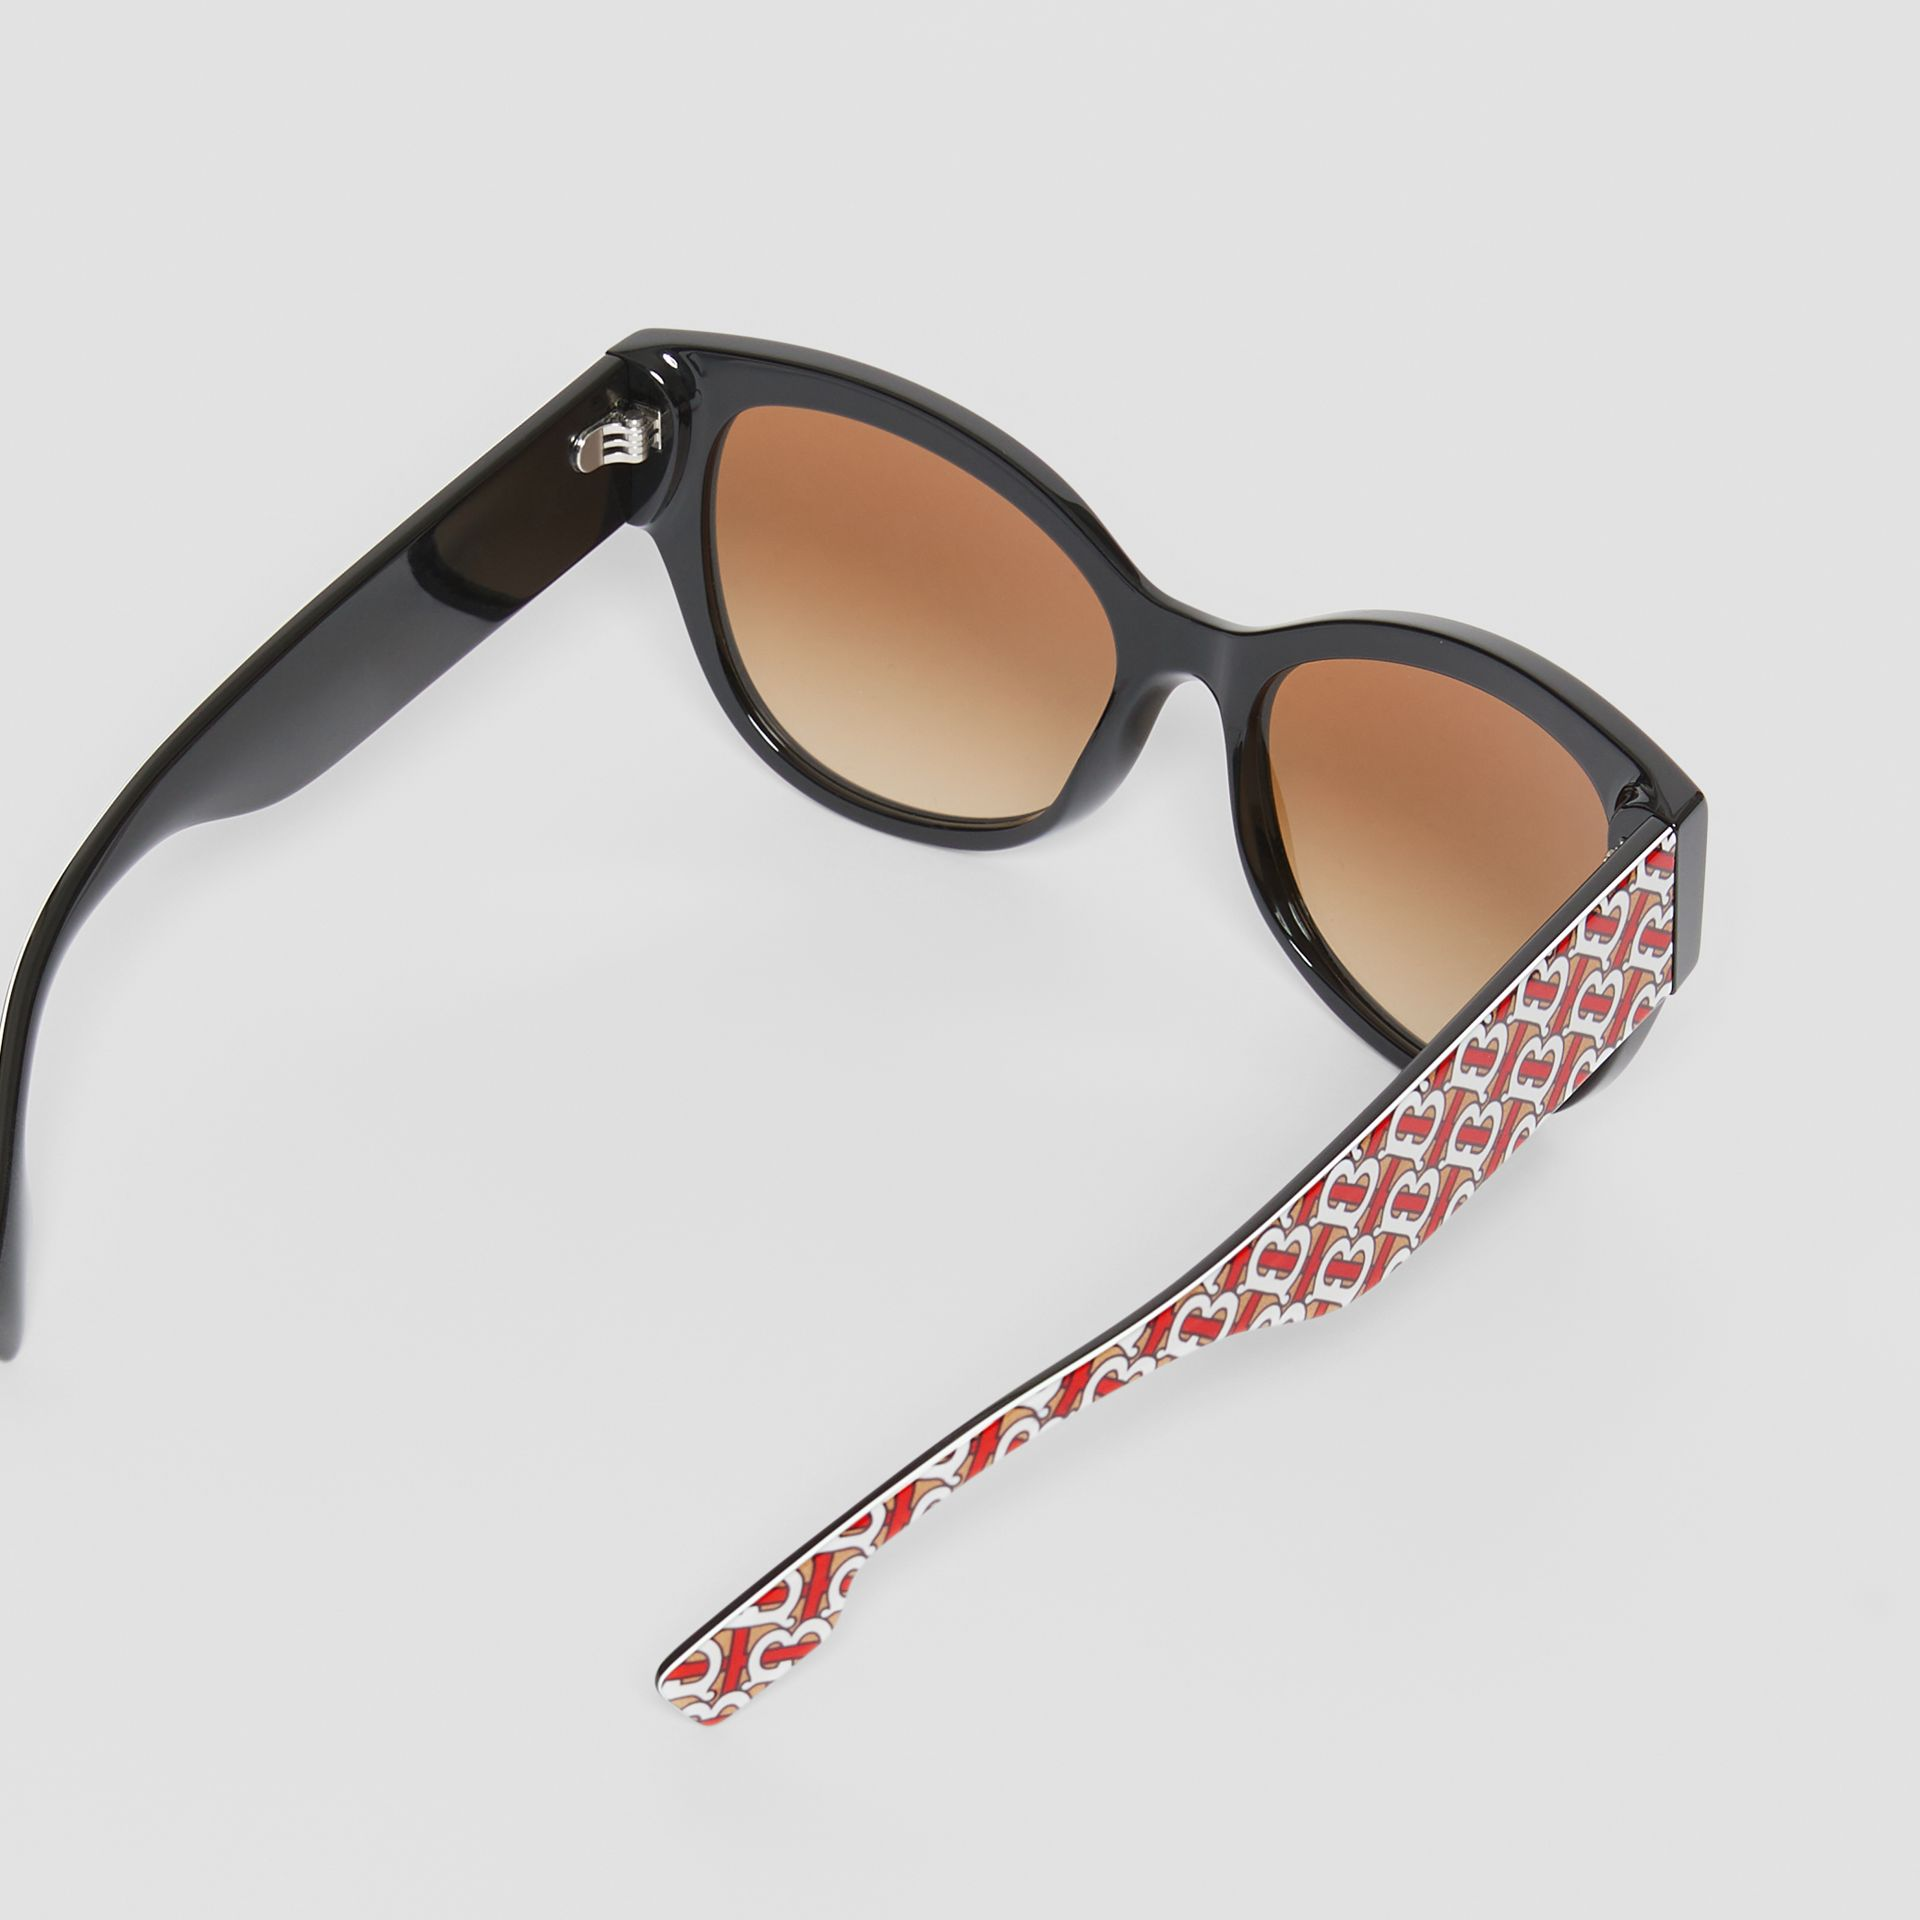 Monogram Detail Butterfly Frame Sunglasses in Black / Beige - Women | Burberry - gallery image 3